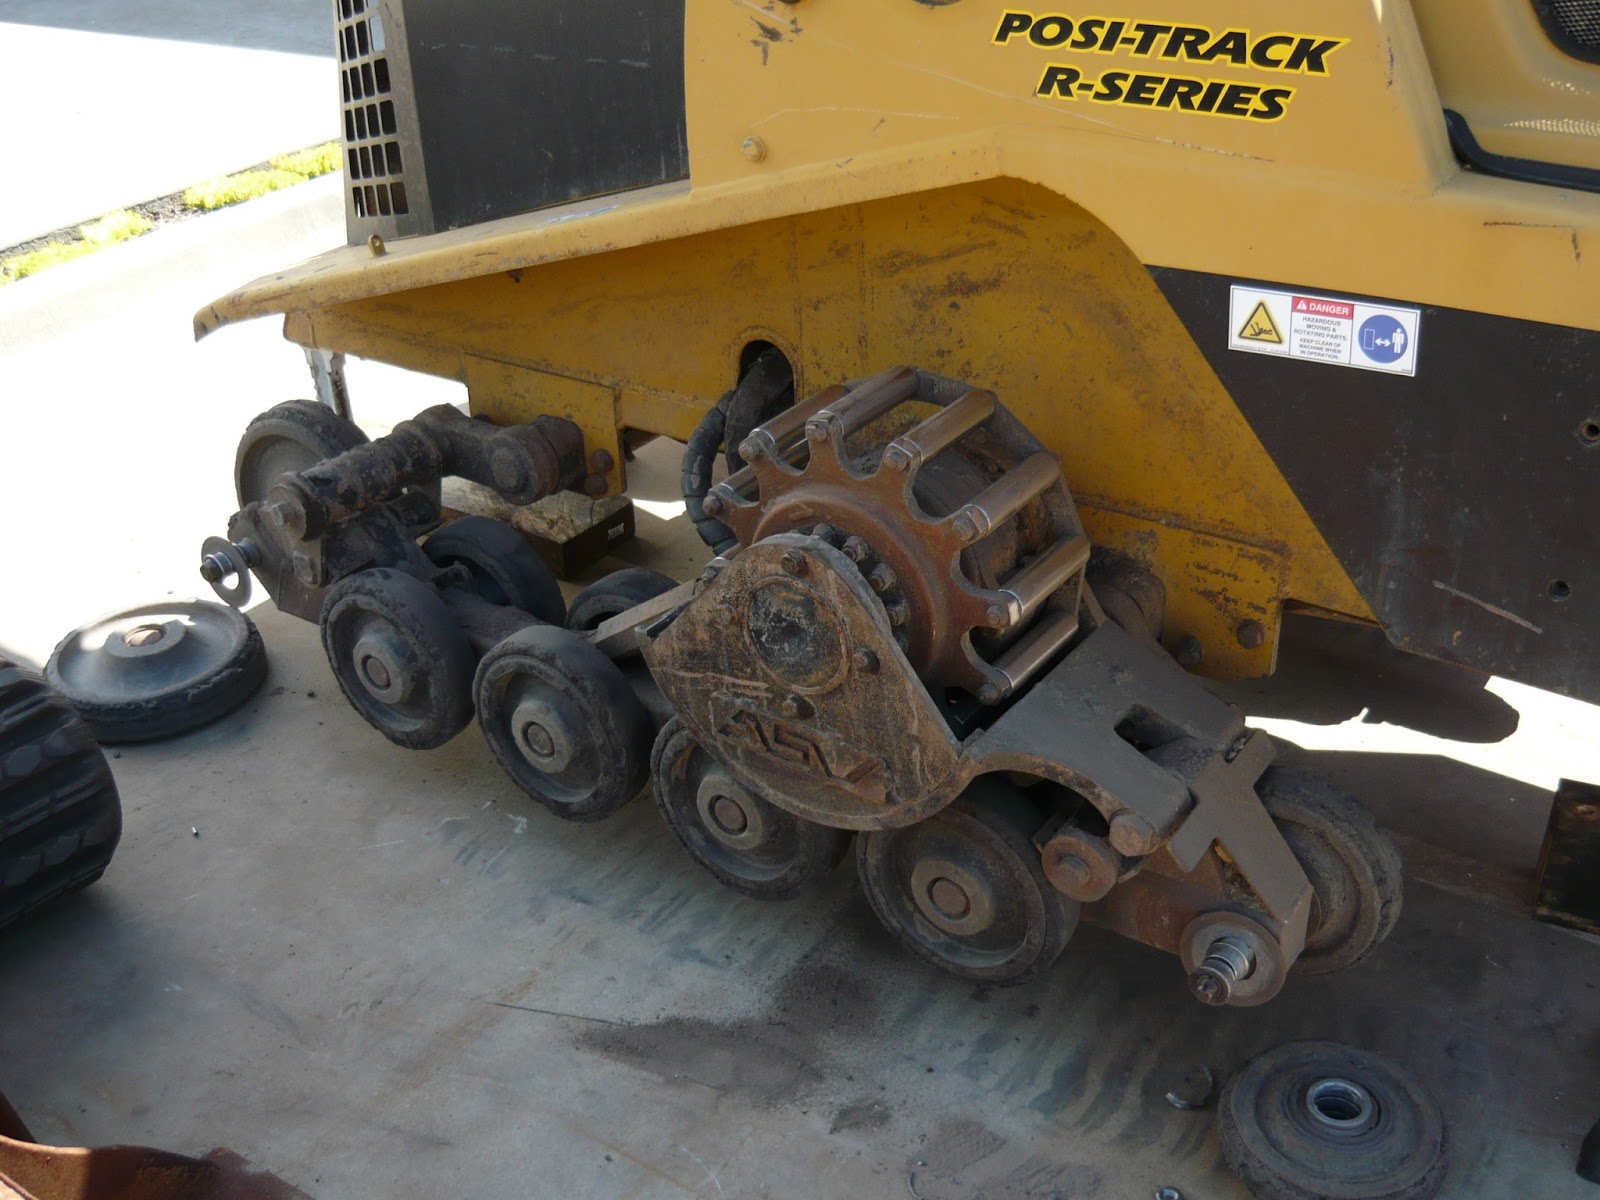 book asv rc track skid steer ats equipment pdf book christie pacific case history asv rc50 track drive and undercarrage